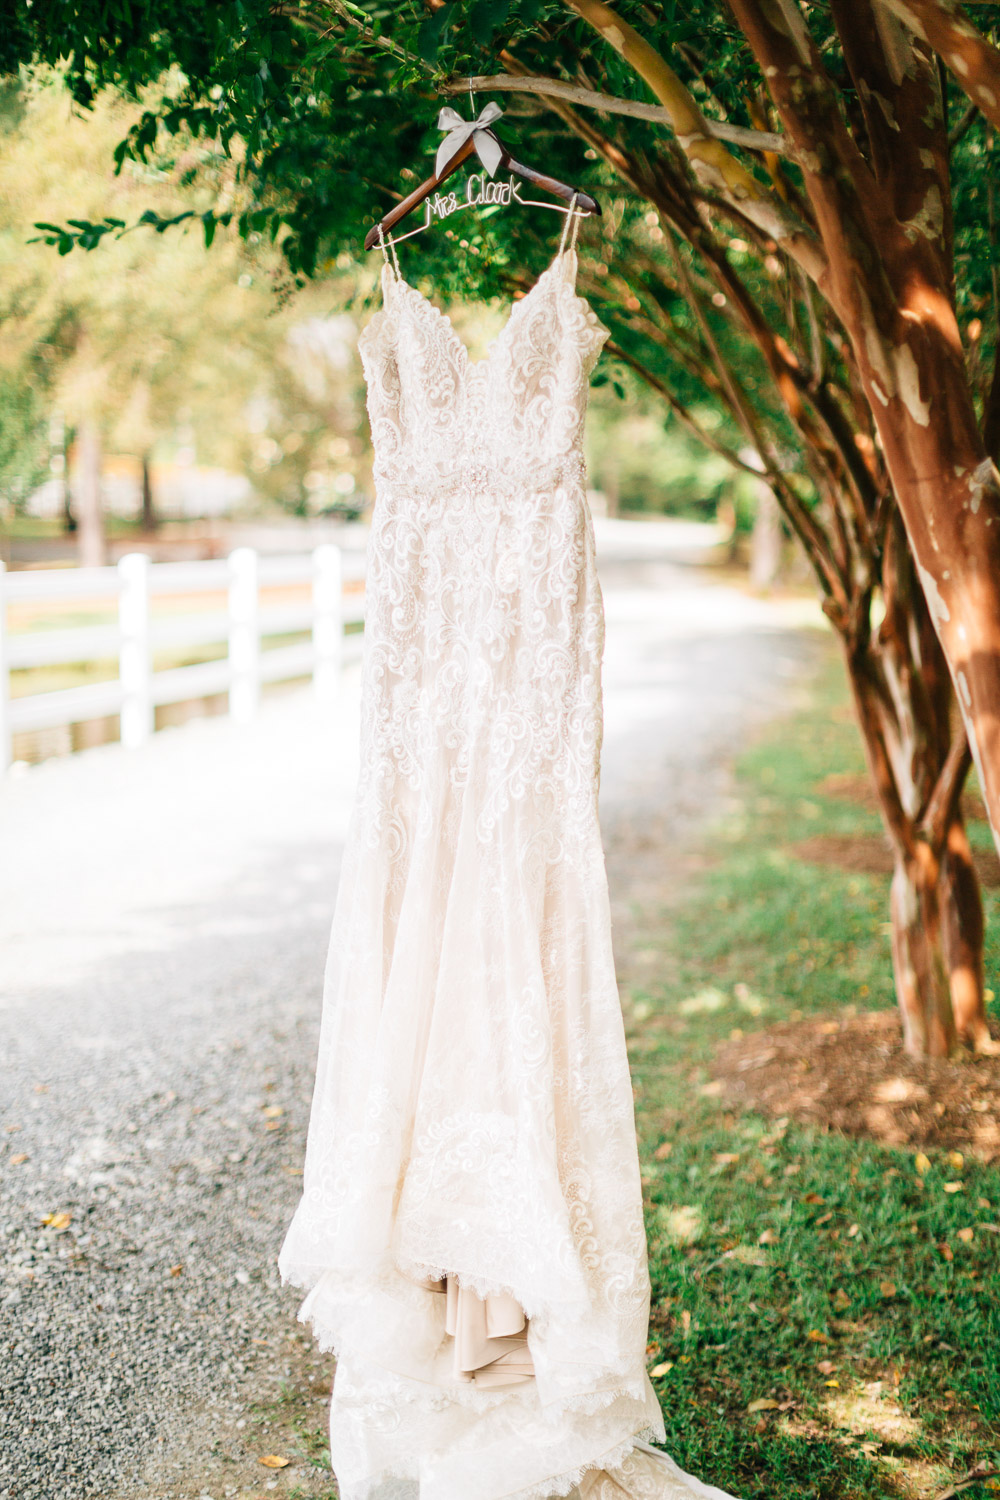 wedding dress hangs from a crepe myrtle tree